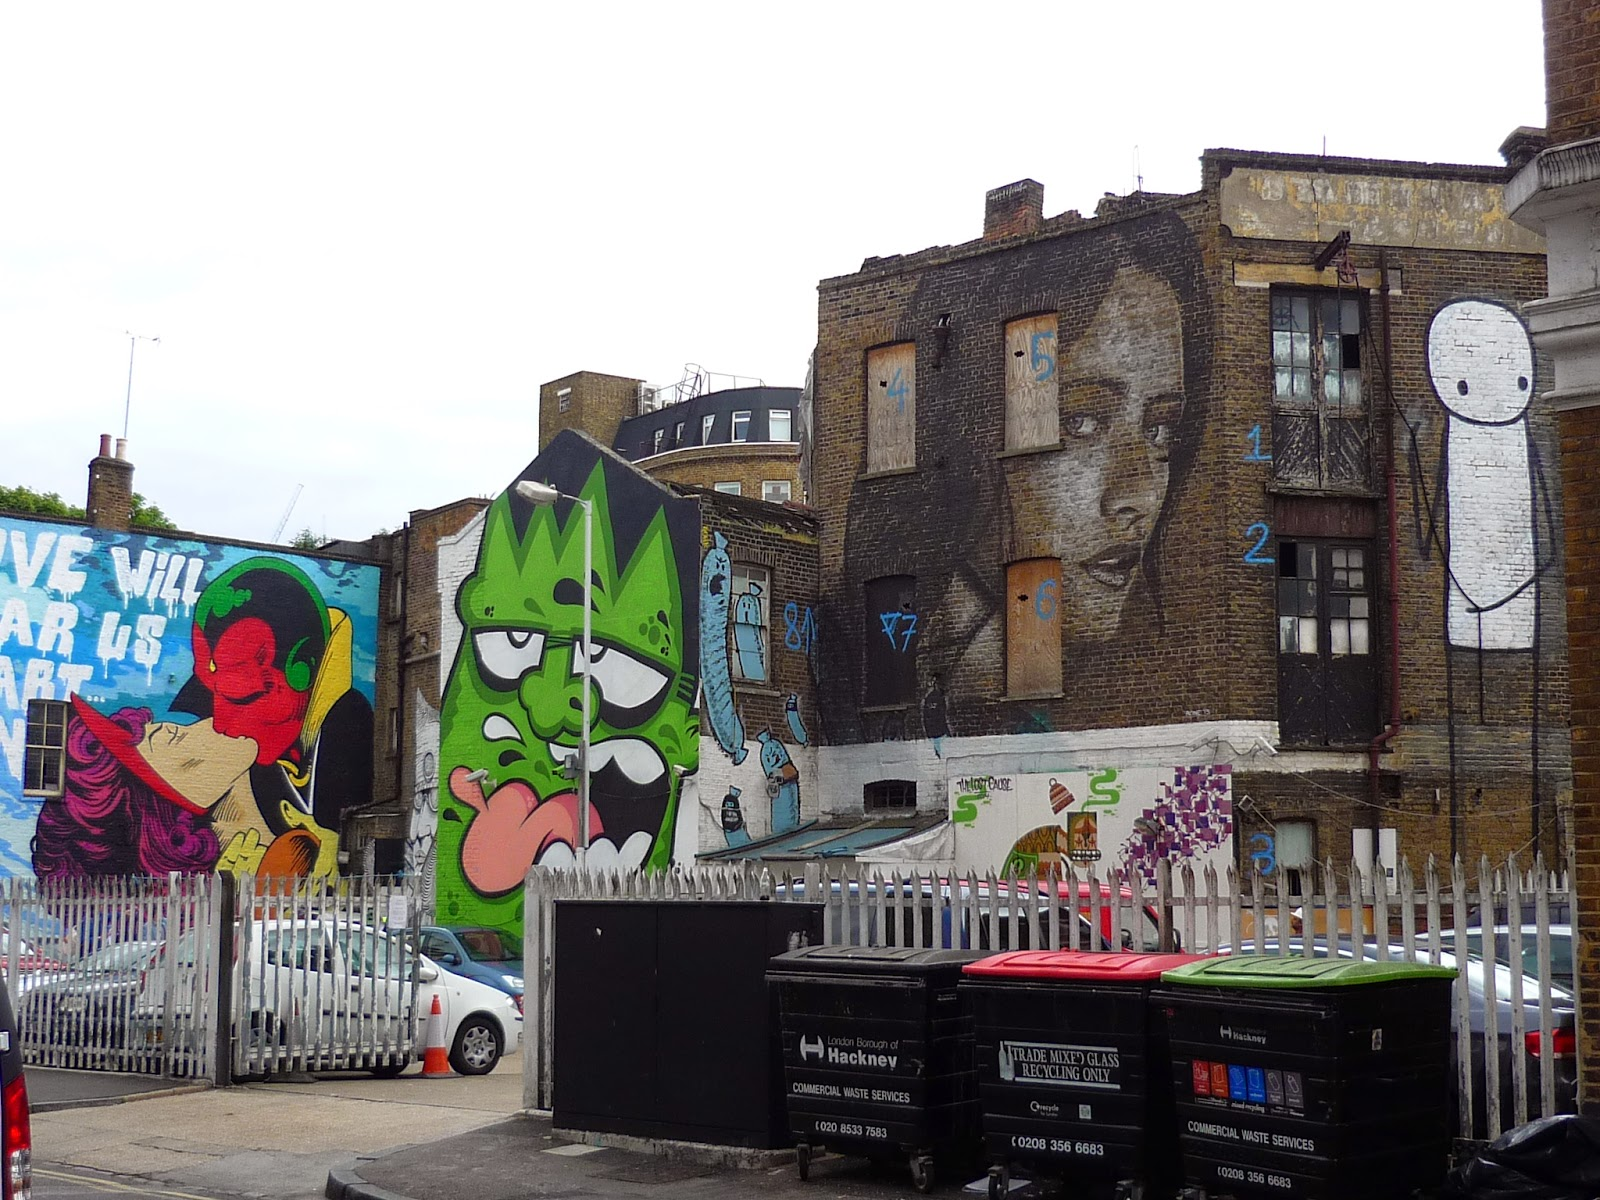 Streets of Shoreditch - Graffiti Wall Art